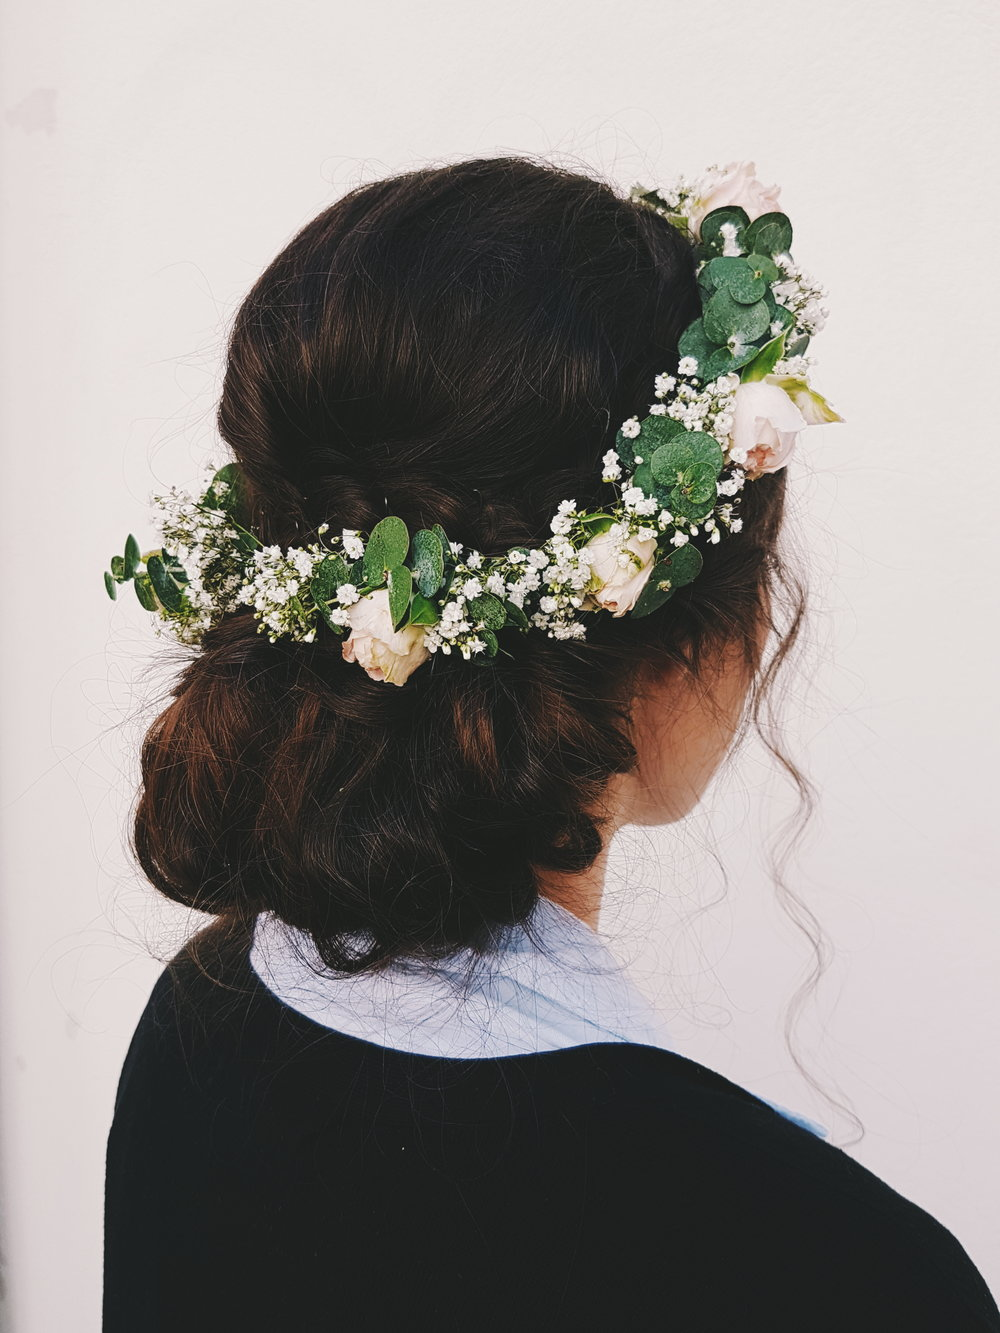 Hair and photos by Susanna Poméll Bridesmaid: Michelle Bride: Milena